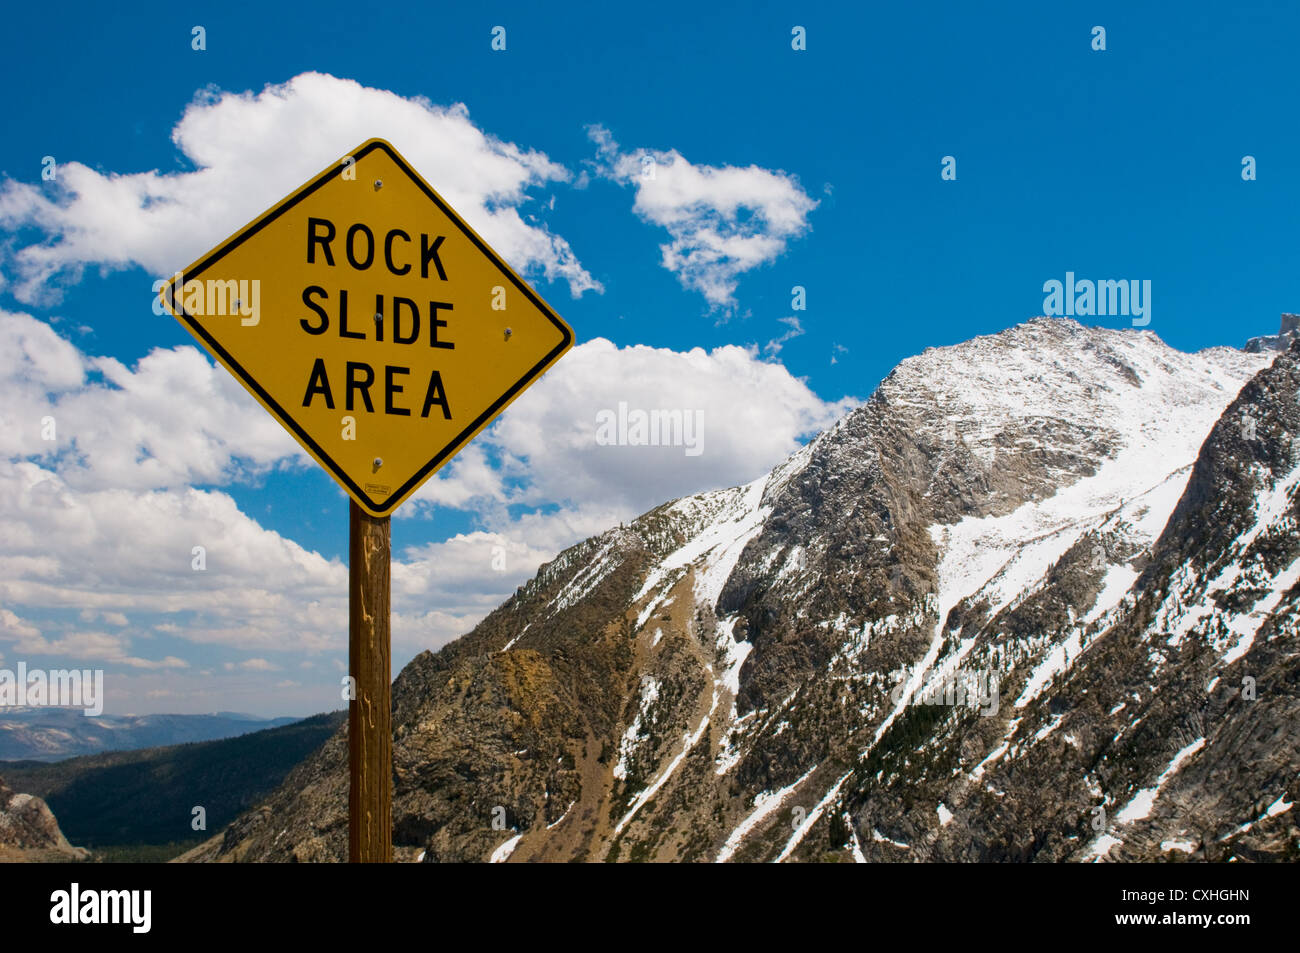 Rock slide area sign in the mountains - Stock Image